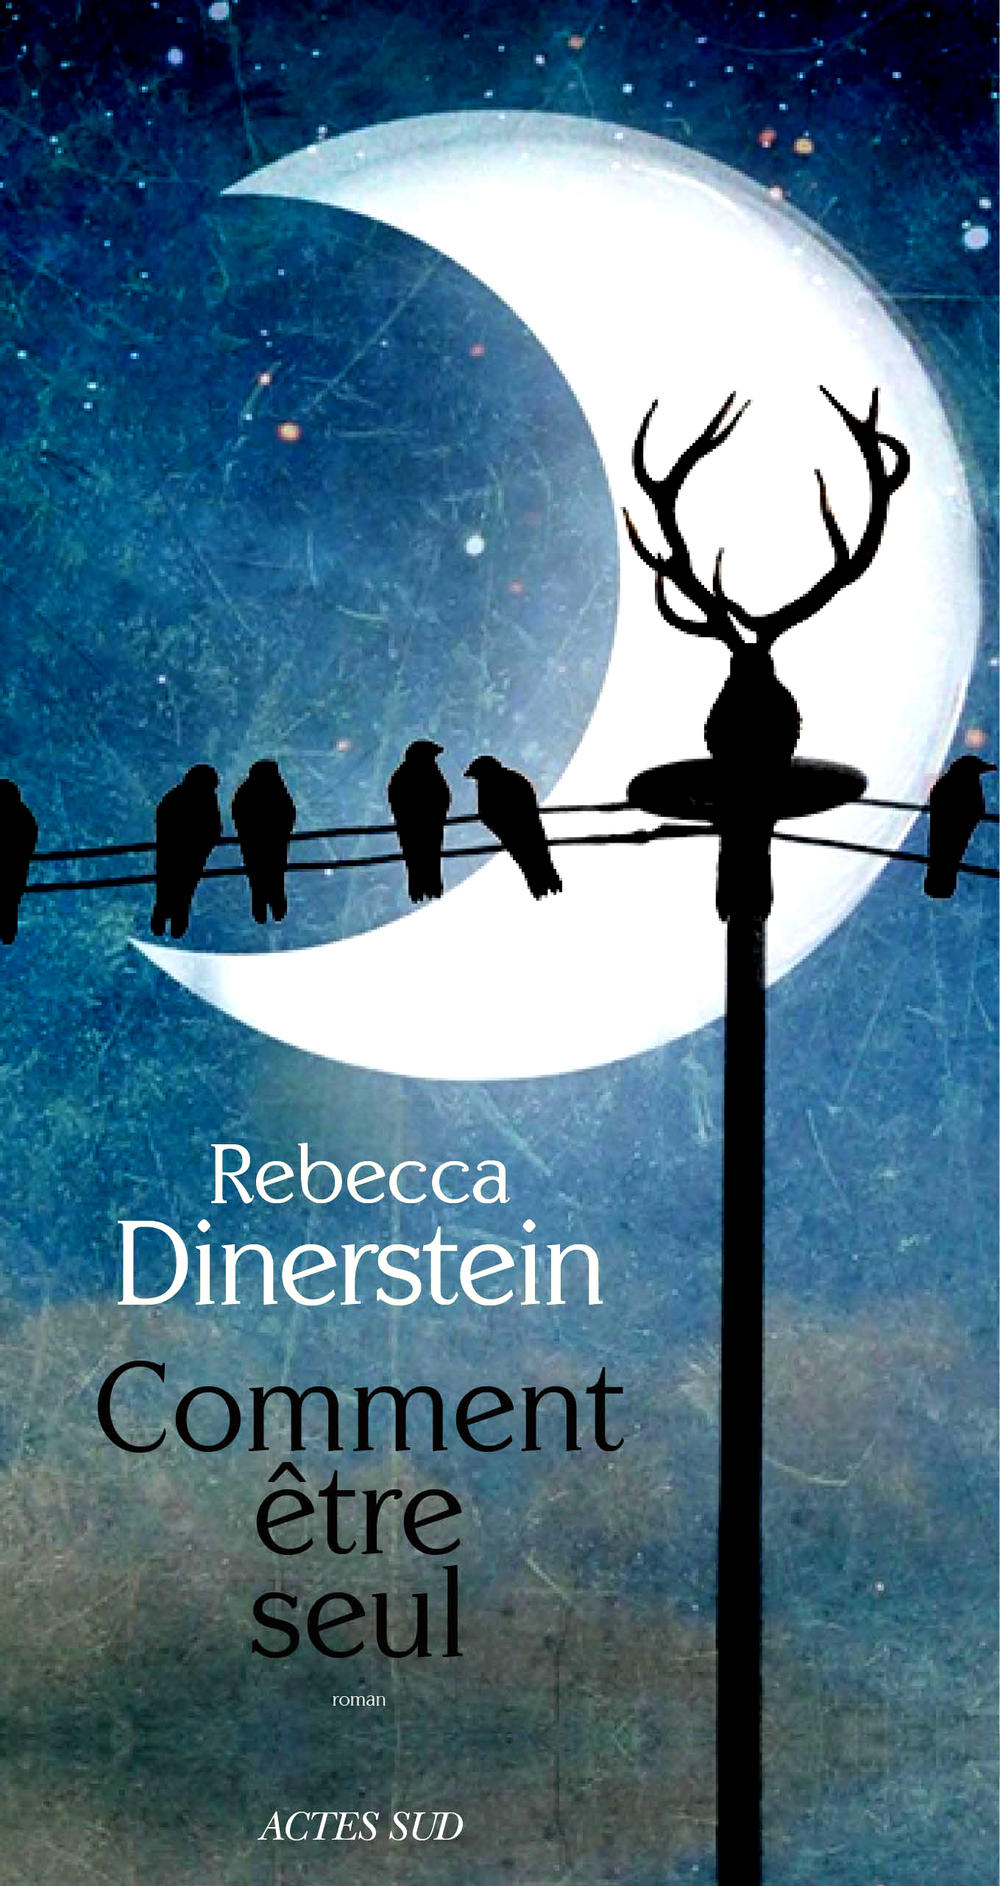 Dinerstein Rebecca - THE SUNLIT NIGHT (French cover).pdf.jpg